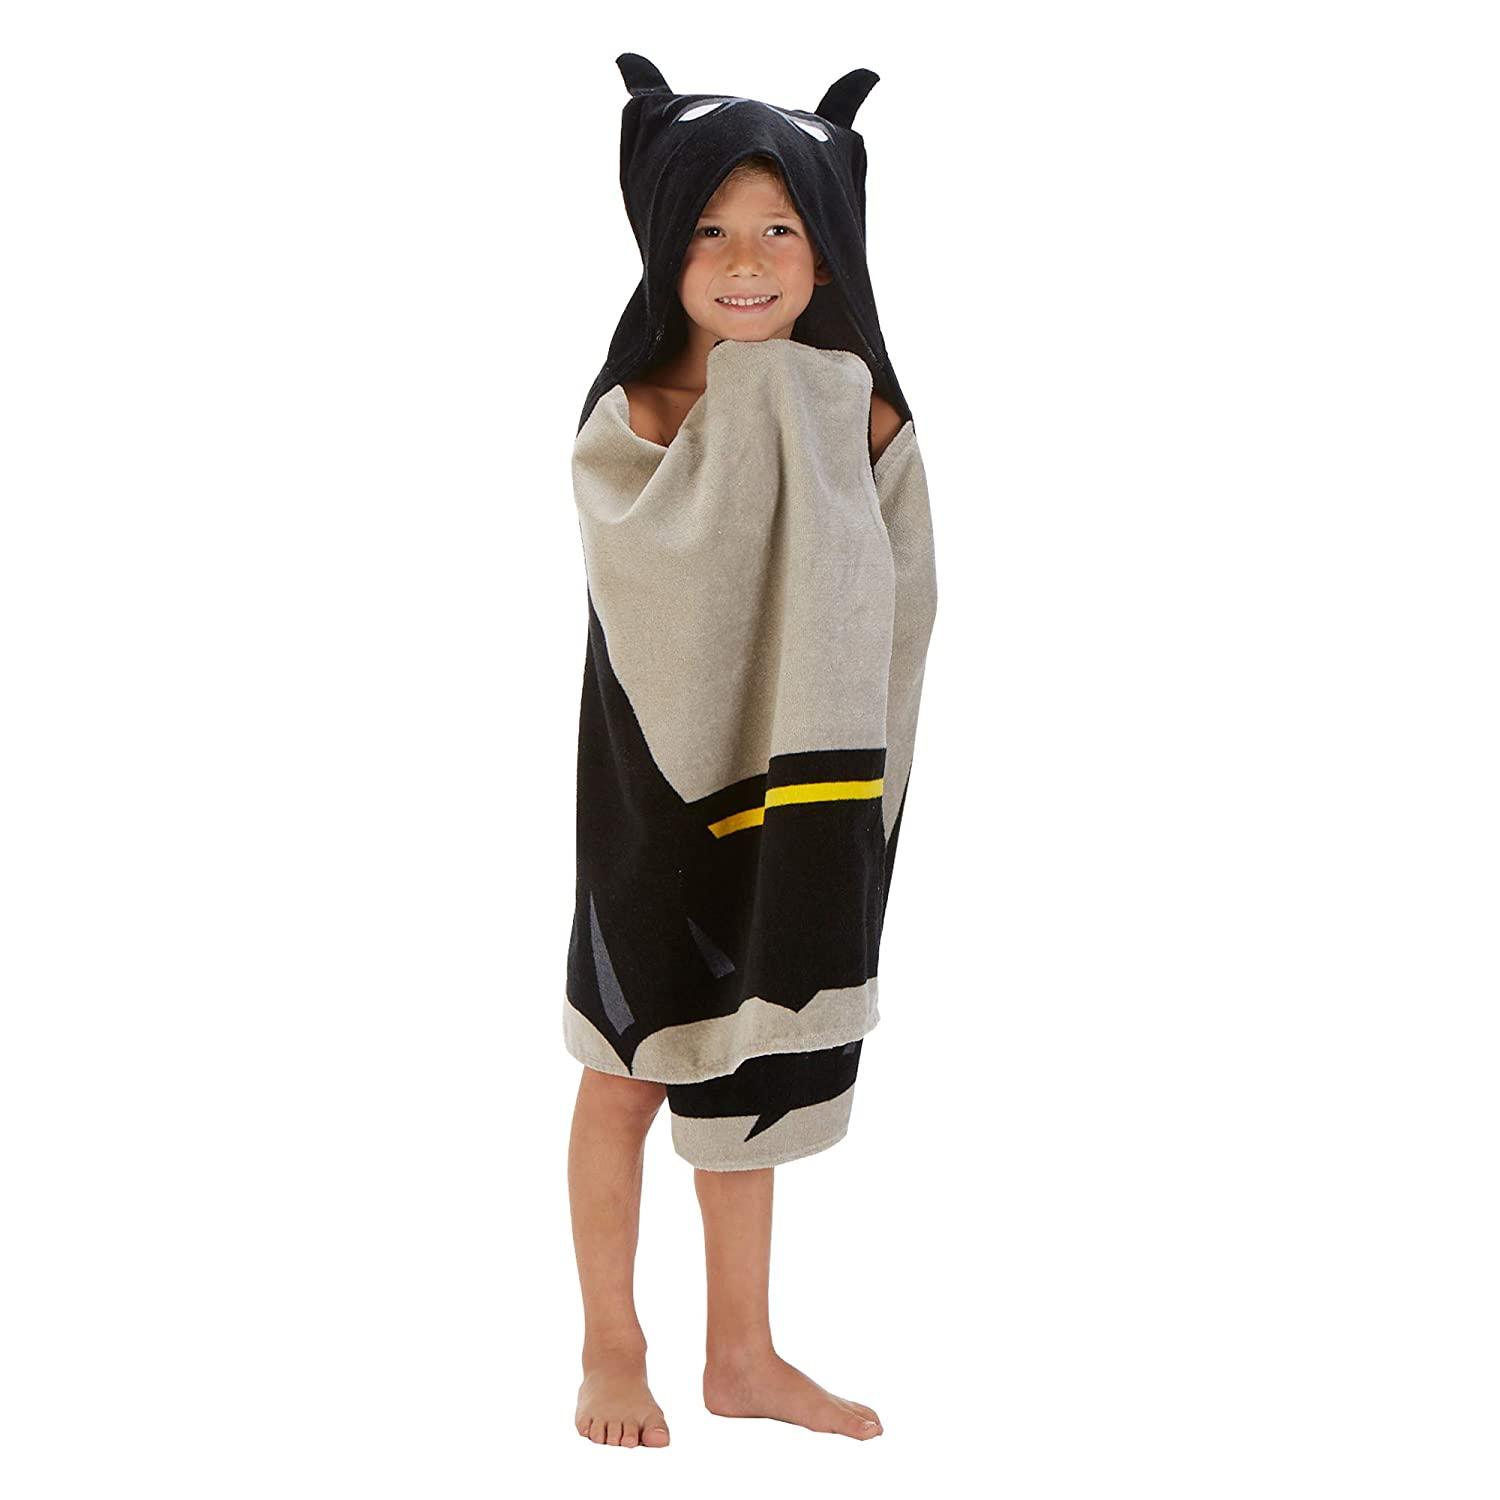 "Warner Bros Batman Soft Cotton Terry Bath and Beach Hooded Towel Wrap 24/"" x 50/"" Black//Grey"